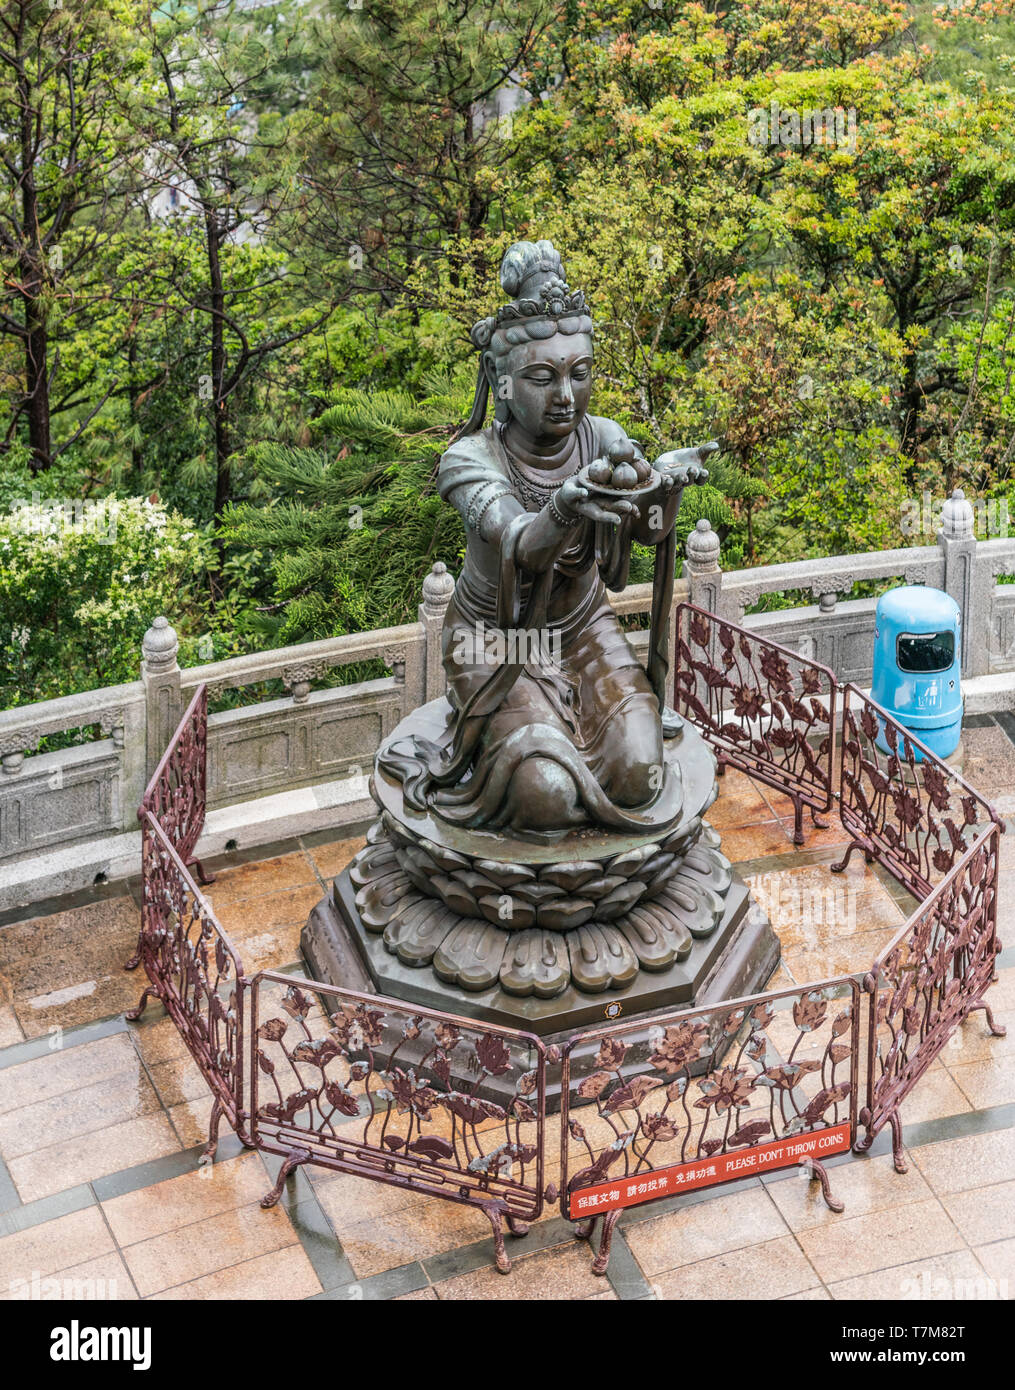 Hong Kong, China - March 7, 2019: Lantau Island. One of the Six Devas offers fruit to Tian Tan Buddha. Bronze statue seen from higher up with green fo - Stock Image